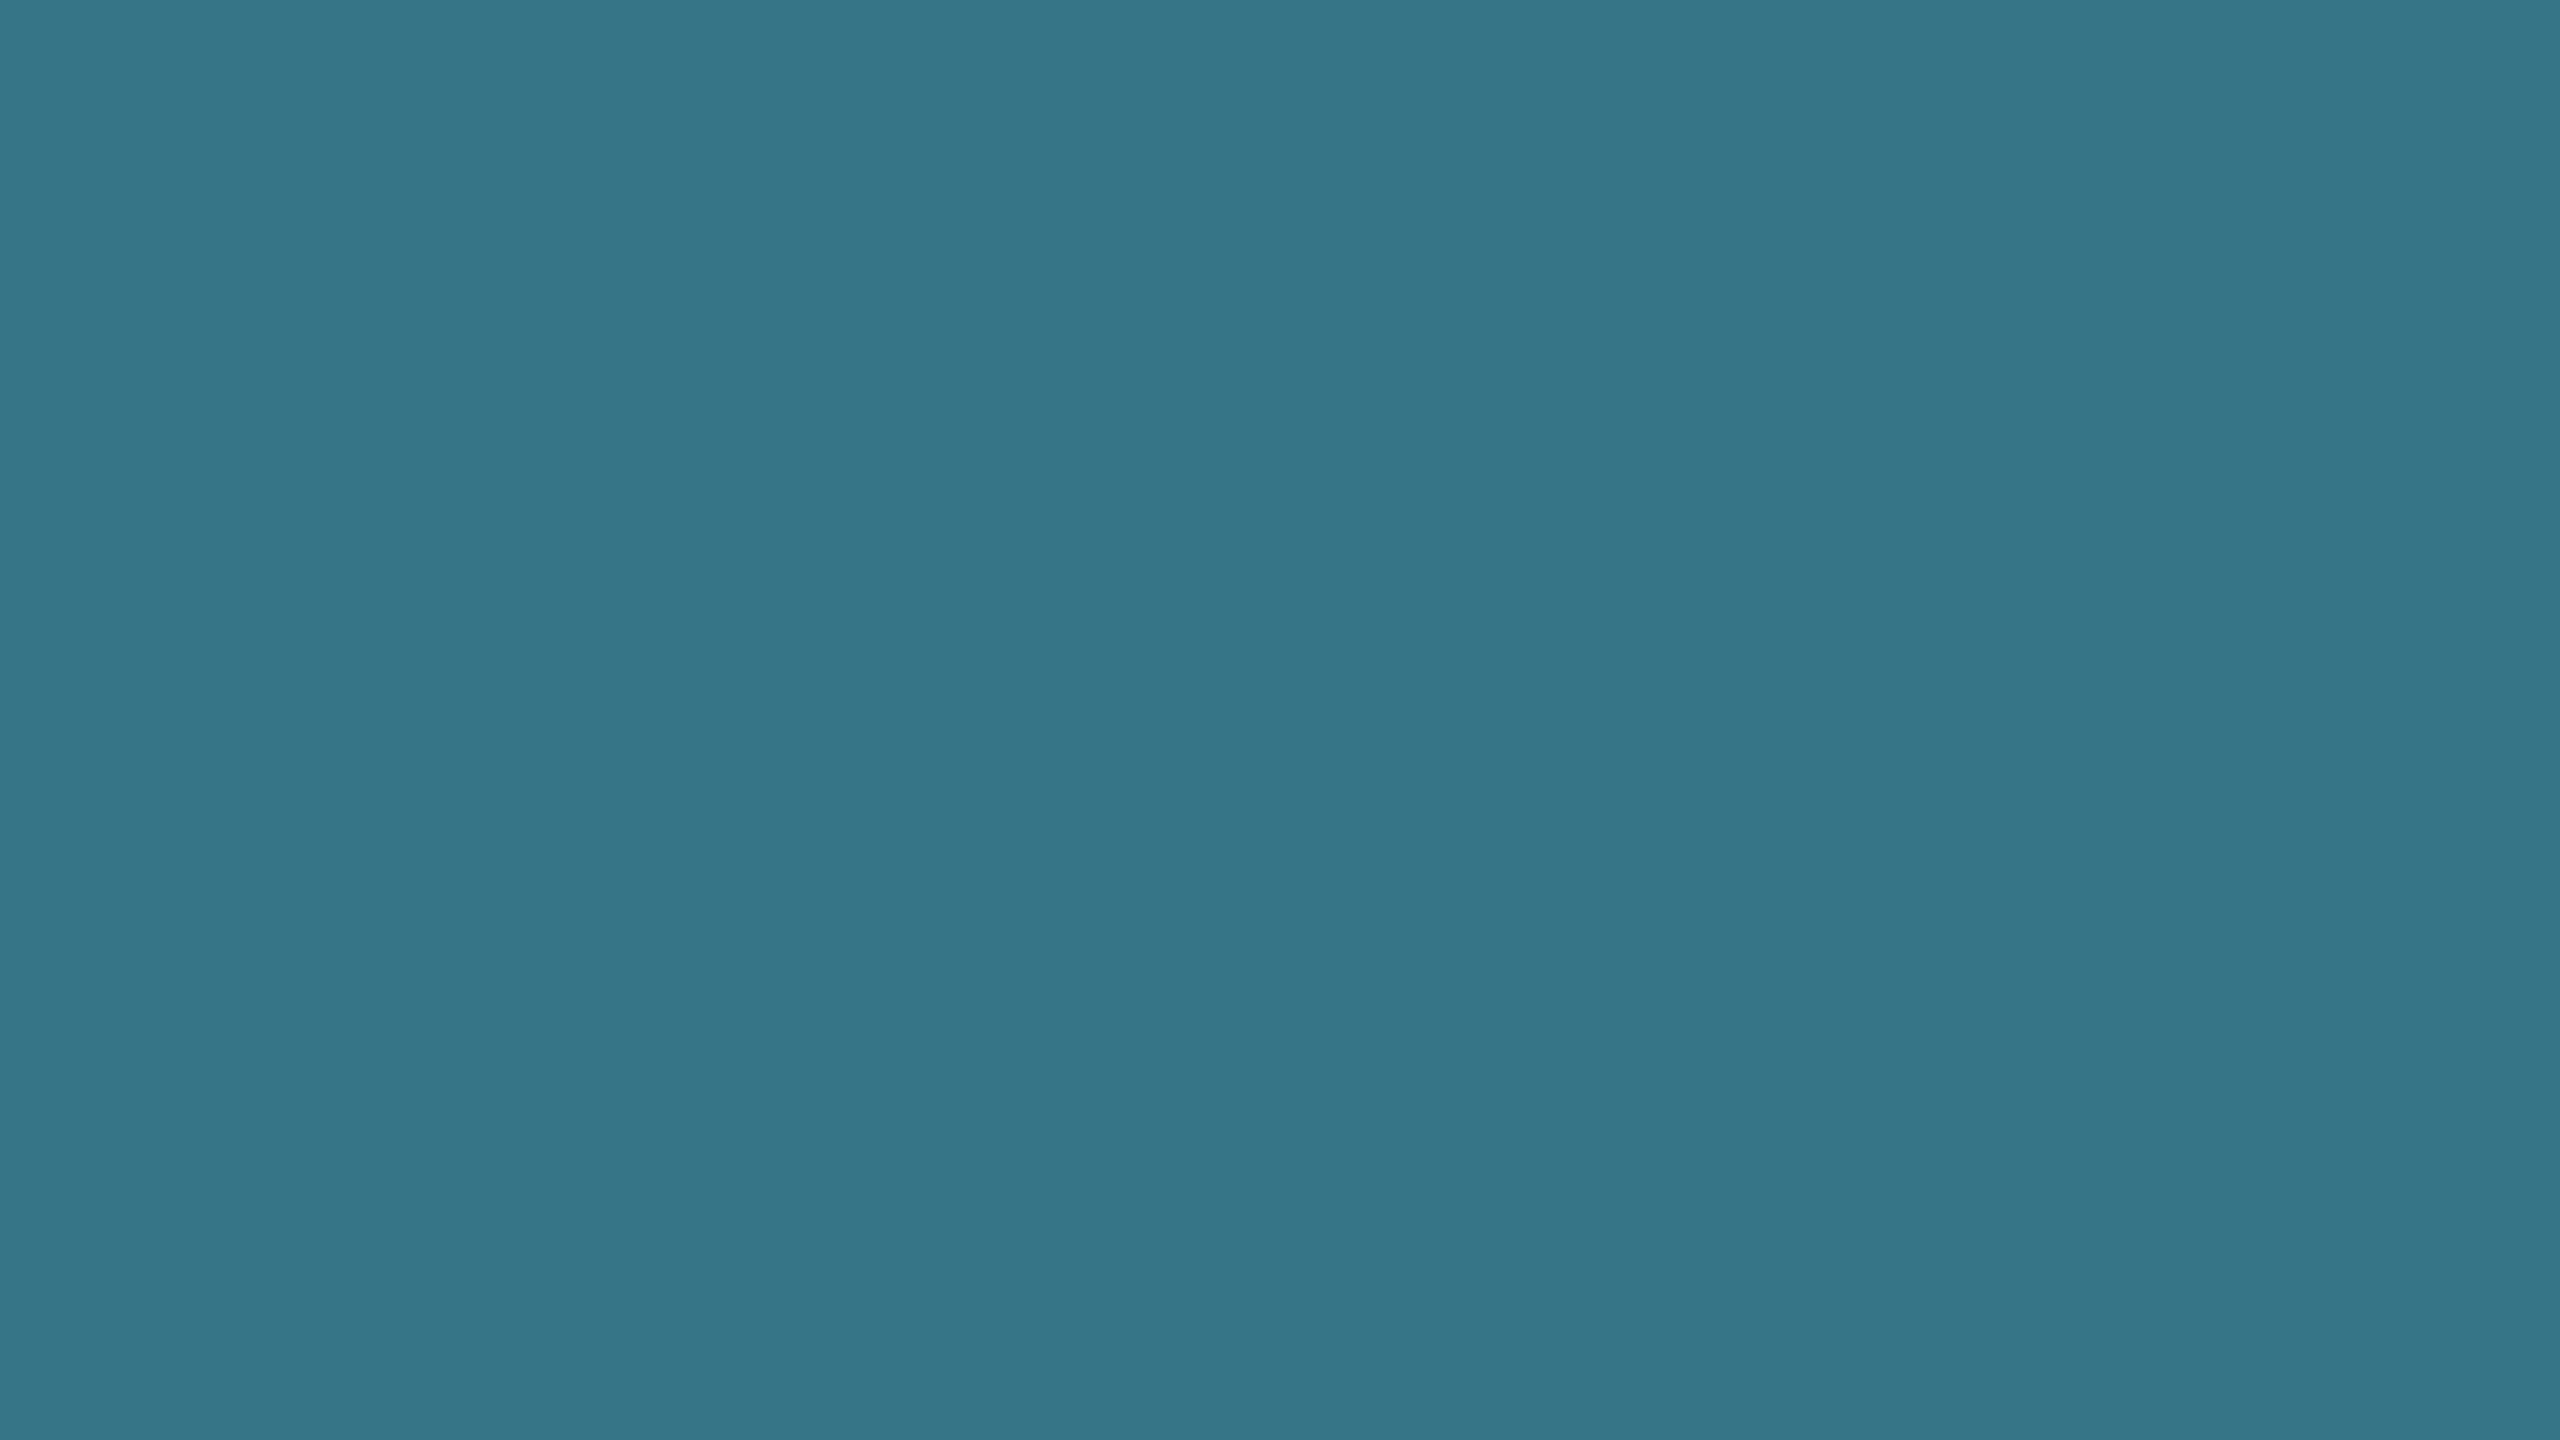 2560x1440 Solid Teal Blue Wallpaper 47198